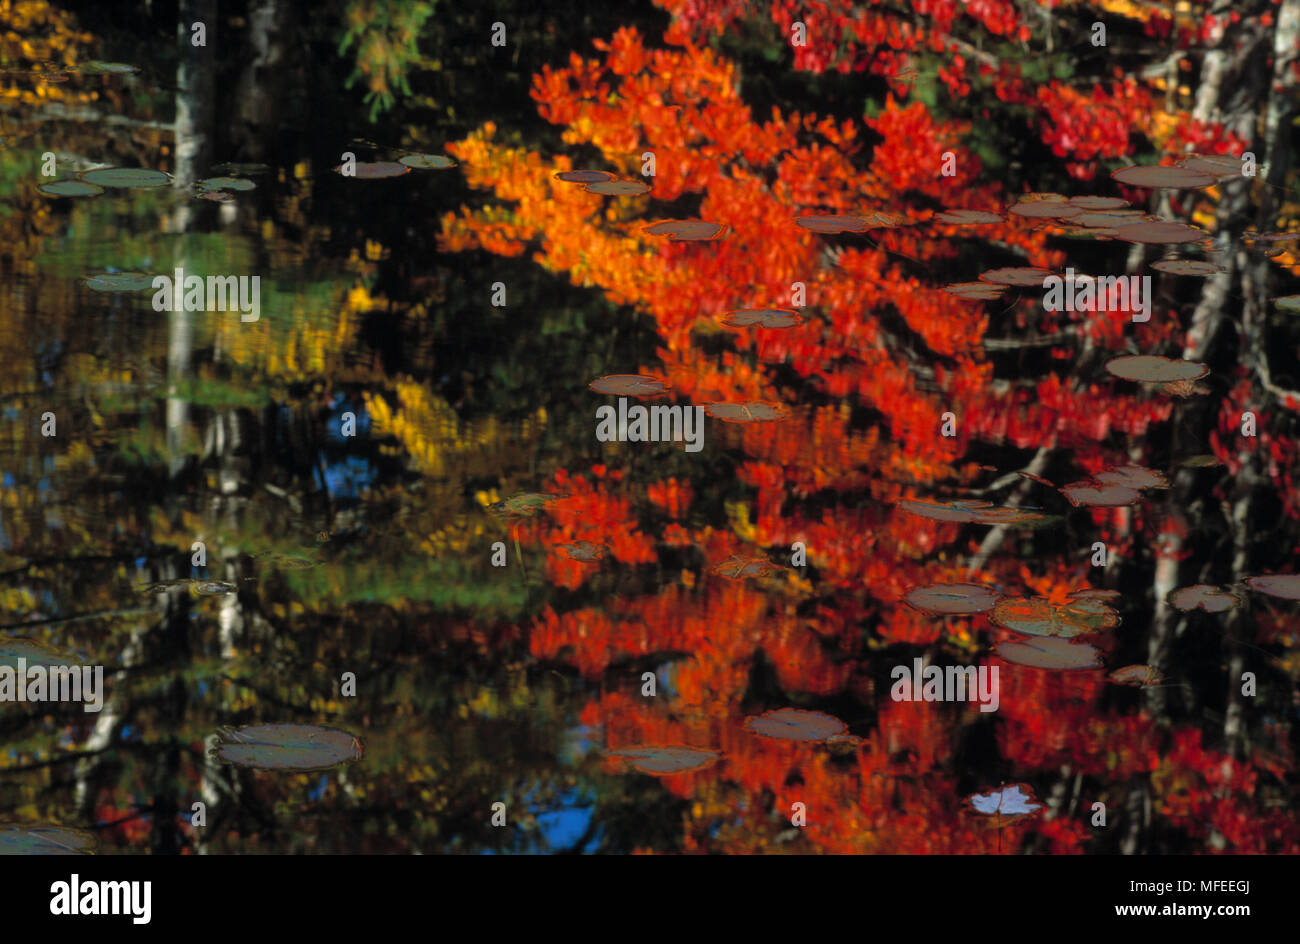 FOREST IN AUTUMN Deciduous forest in autumn colours, reflected in water with waterlilies, Michigan, USA - Stock Image